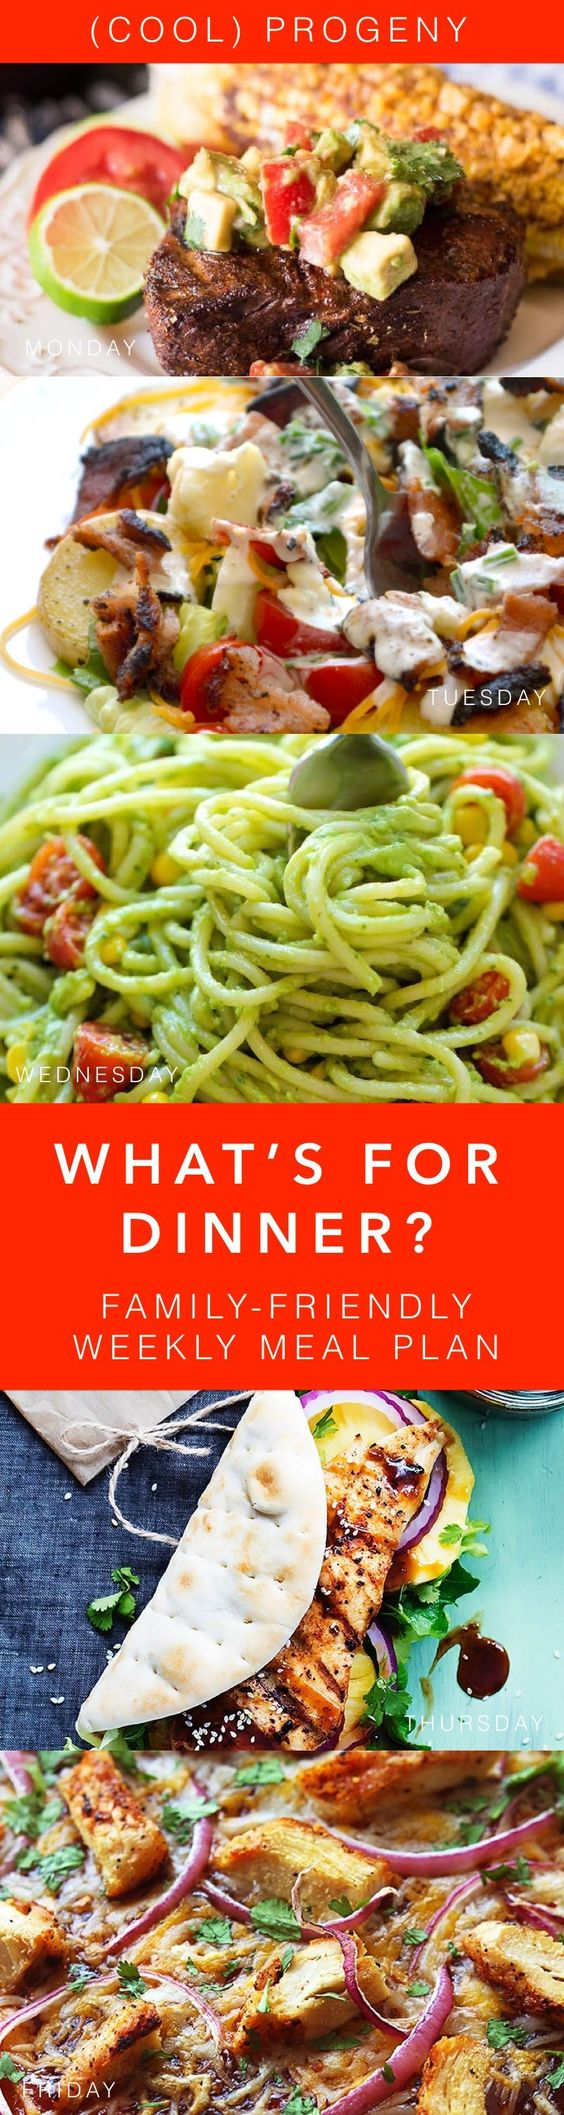 A kid-friendly dinner plan to help you get through the busy week and still savor the flavors of summer! Best part? All of these go from ingredients to table in under 30 minutes, which means you can spend more time kicking soccer goals in the front yard or running through the sprinkler.  http://coolprogeny.com/2016/07/family-friendly-dinners-2/?utm_campaign=coschedule&utm_source=pinterest&utm_medium=%28cool%29%20progeny&utm_content=family-friendly%20dinners%20this%20week